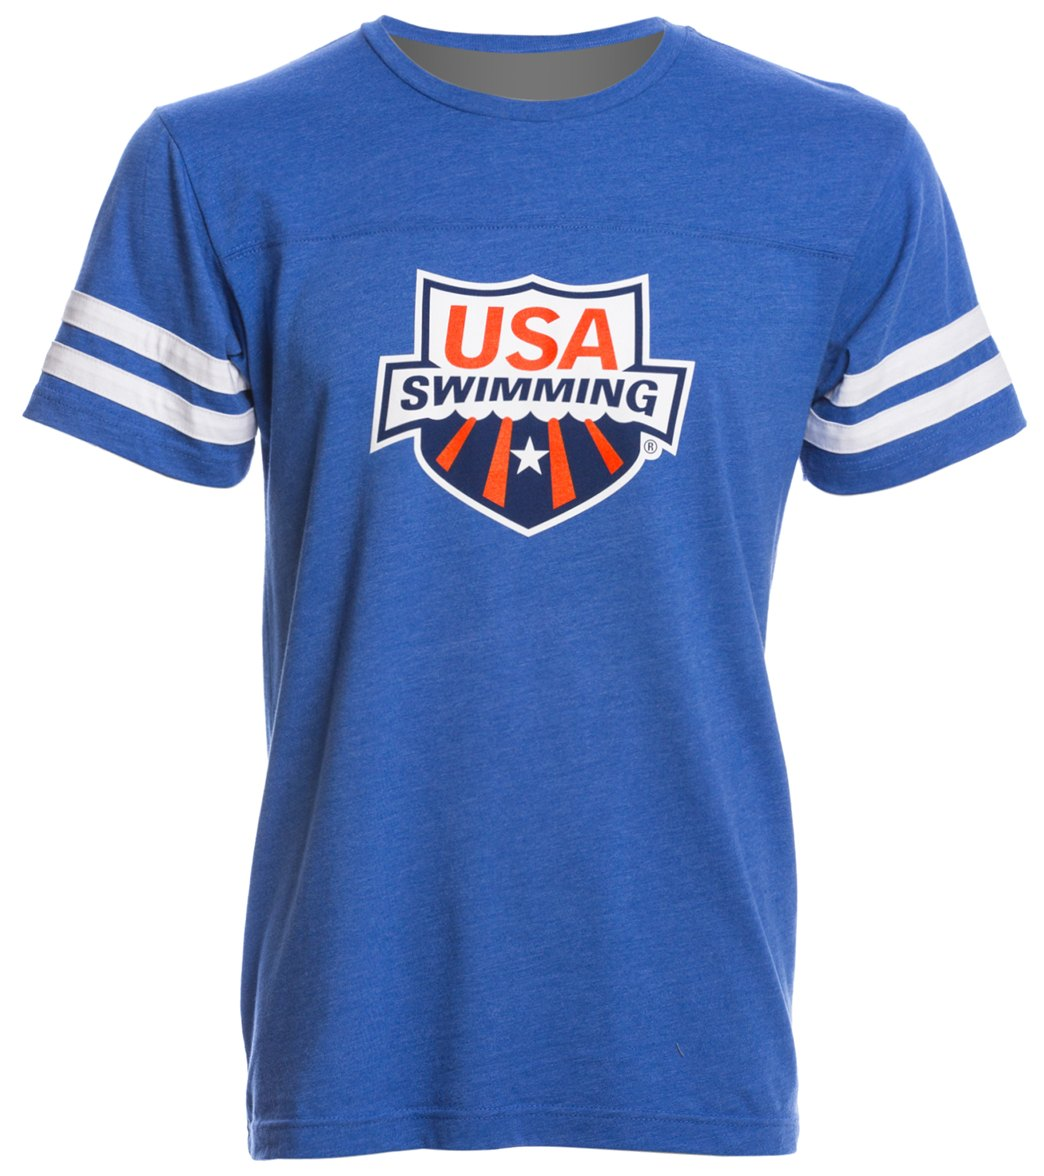 c269cc1e USA Swimming Unisex Swimmer Jersey T-Shirt at SwimOutlet.com